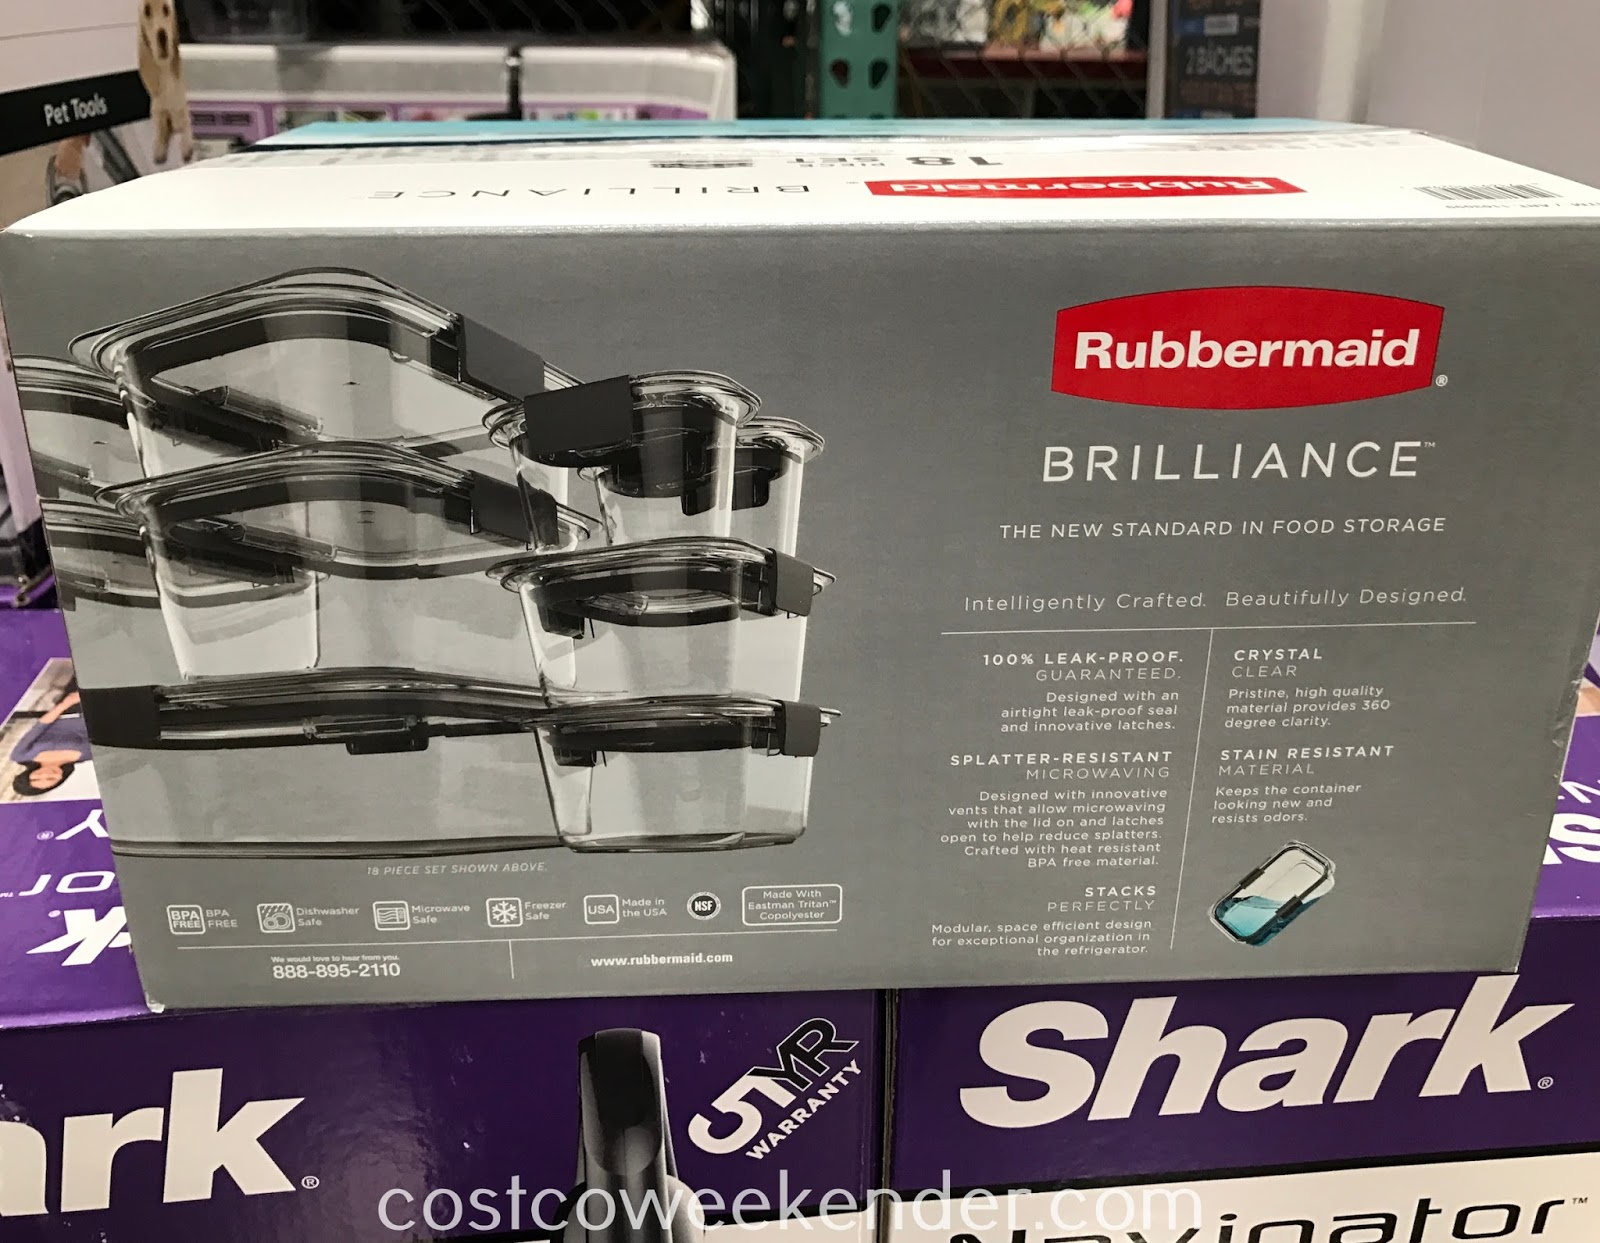 Costco 1103099 - Rubbermaid Brilliance 18pc Food Storage Set: great for any kitchen